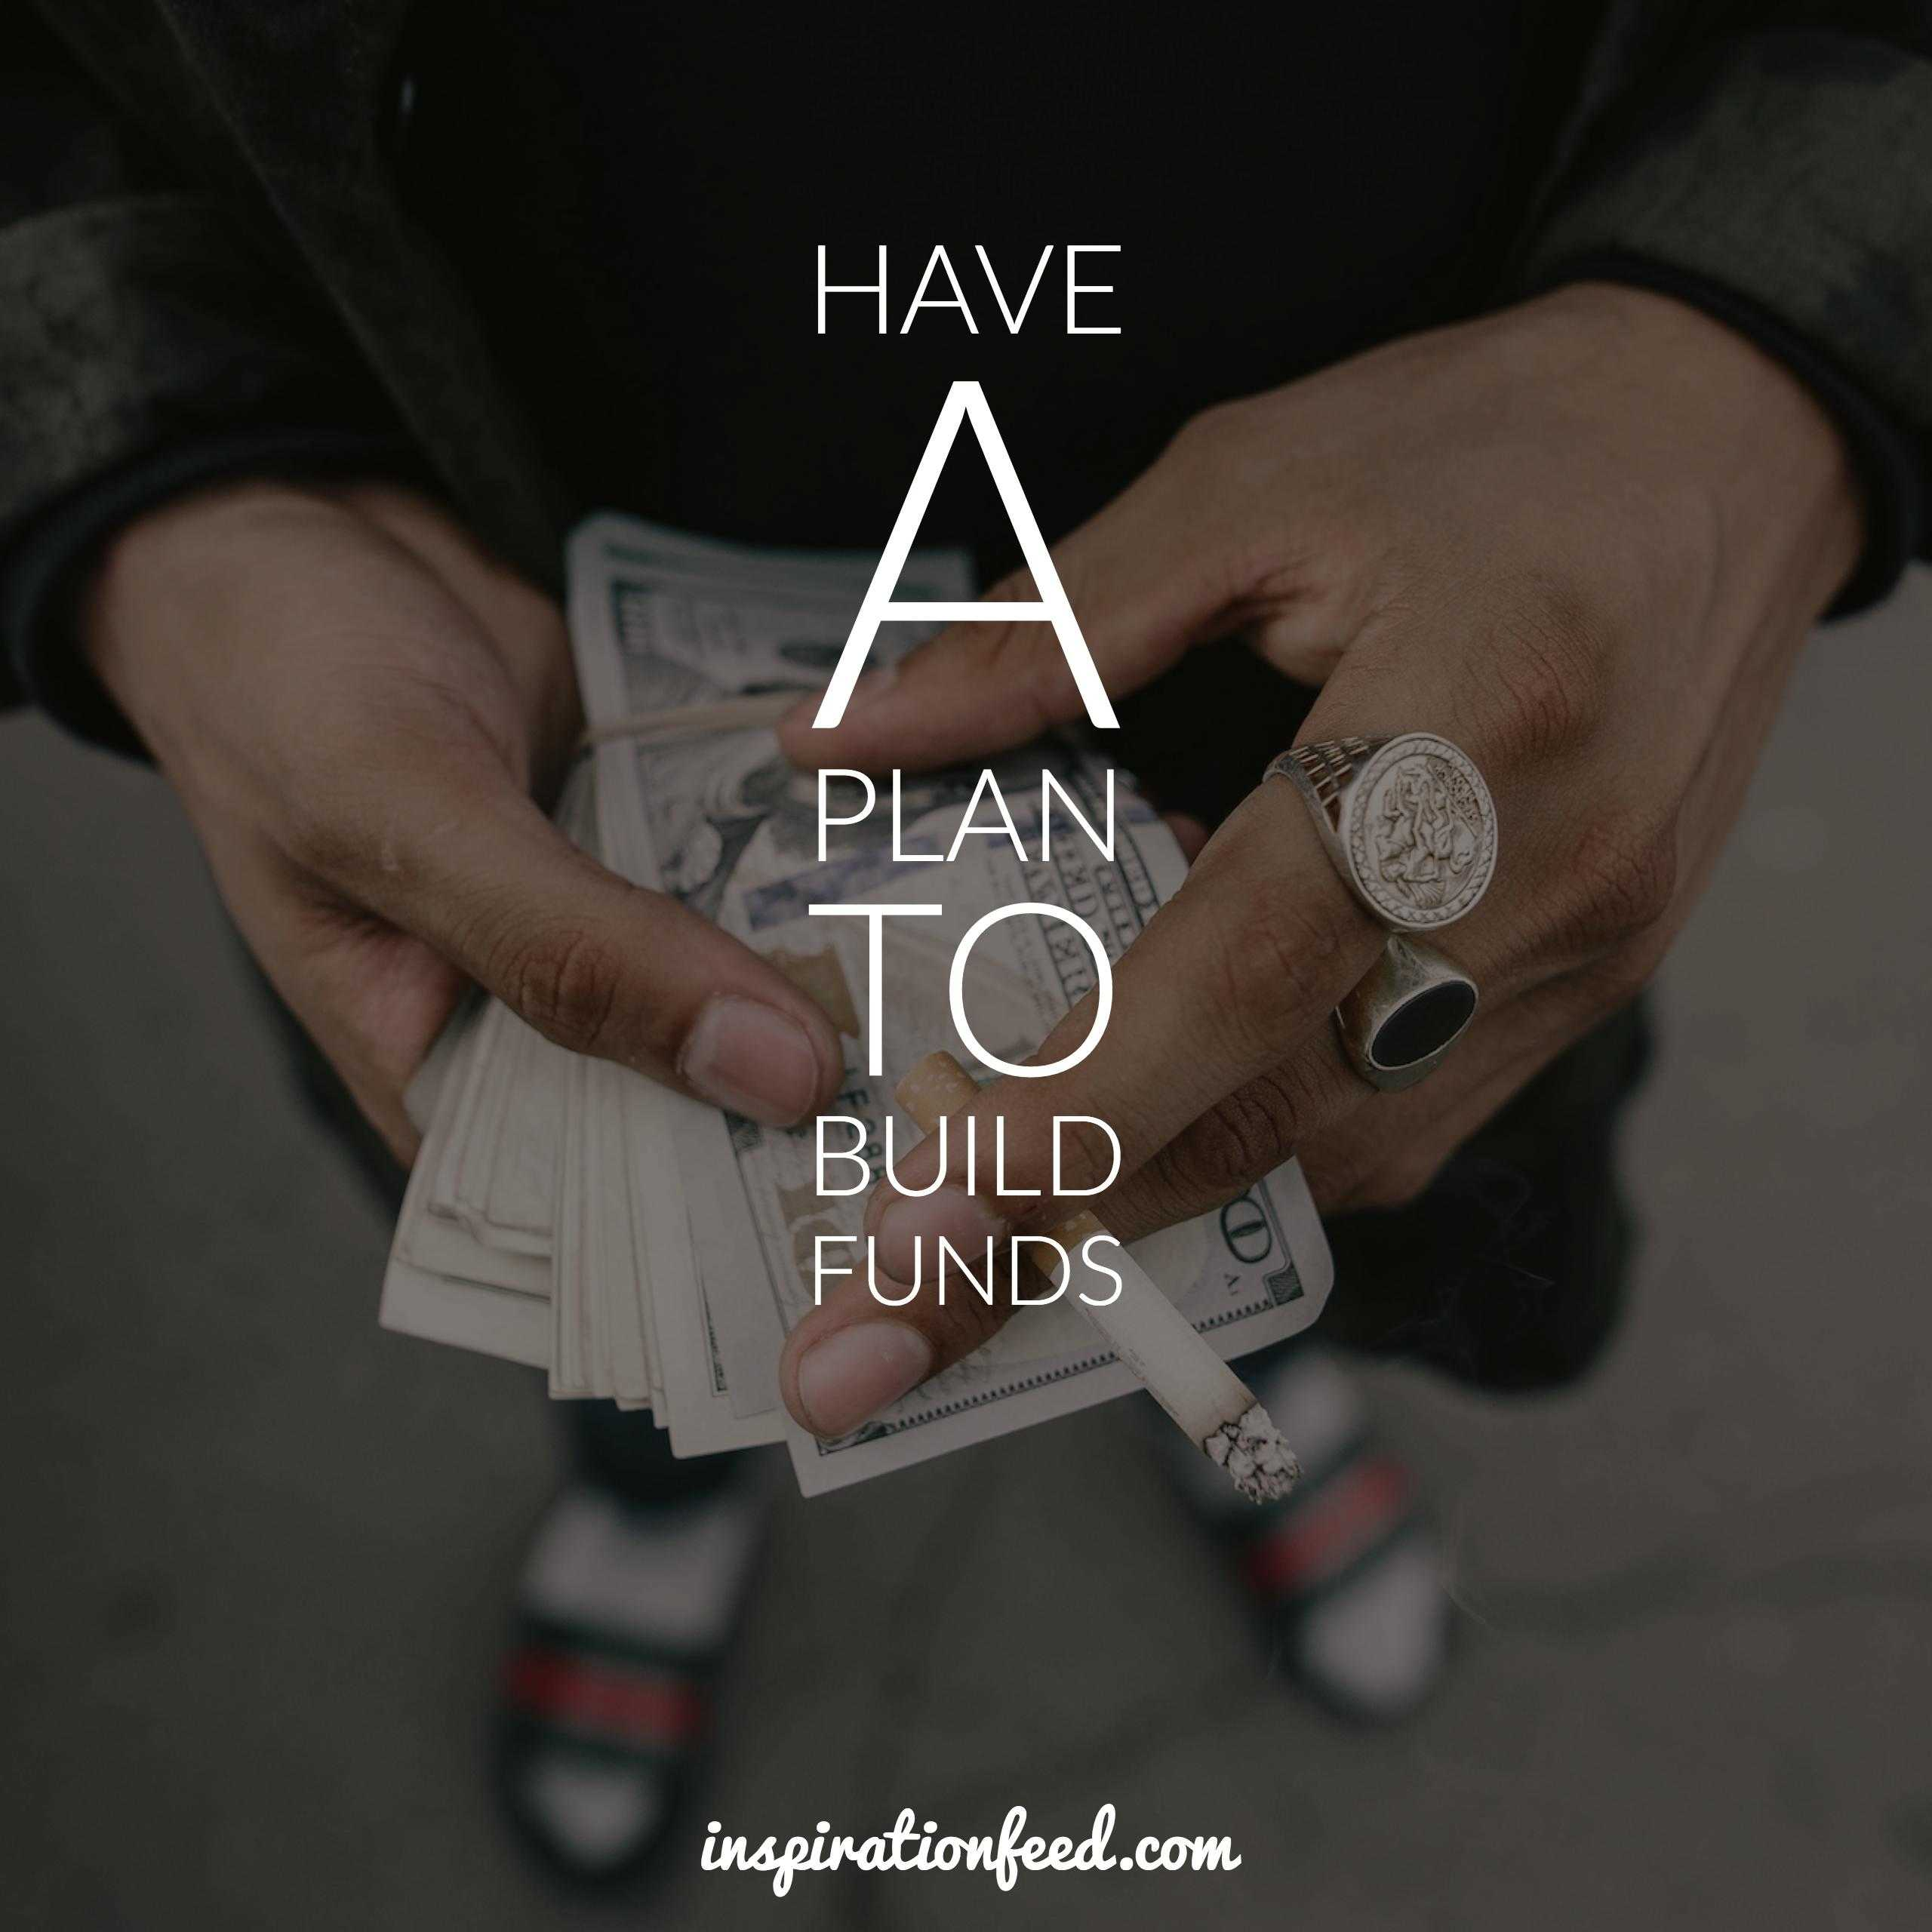 have-a-plan-to-build-funds